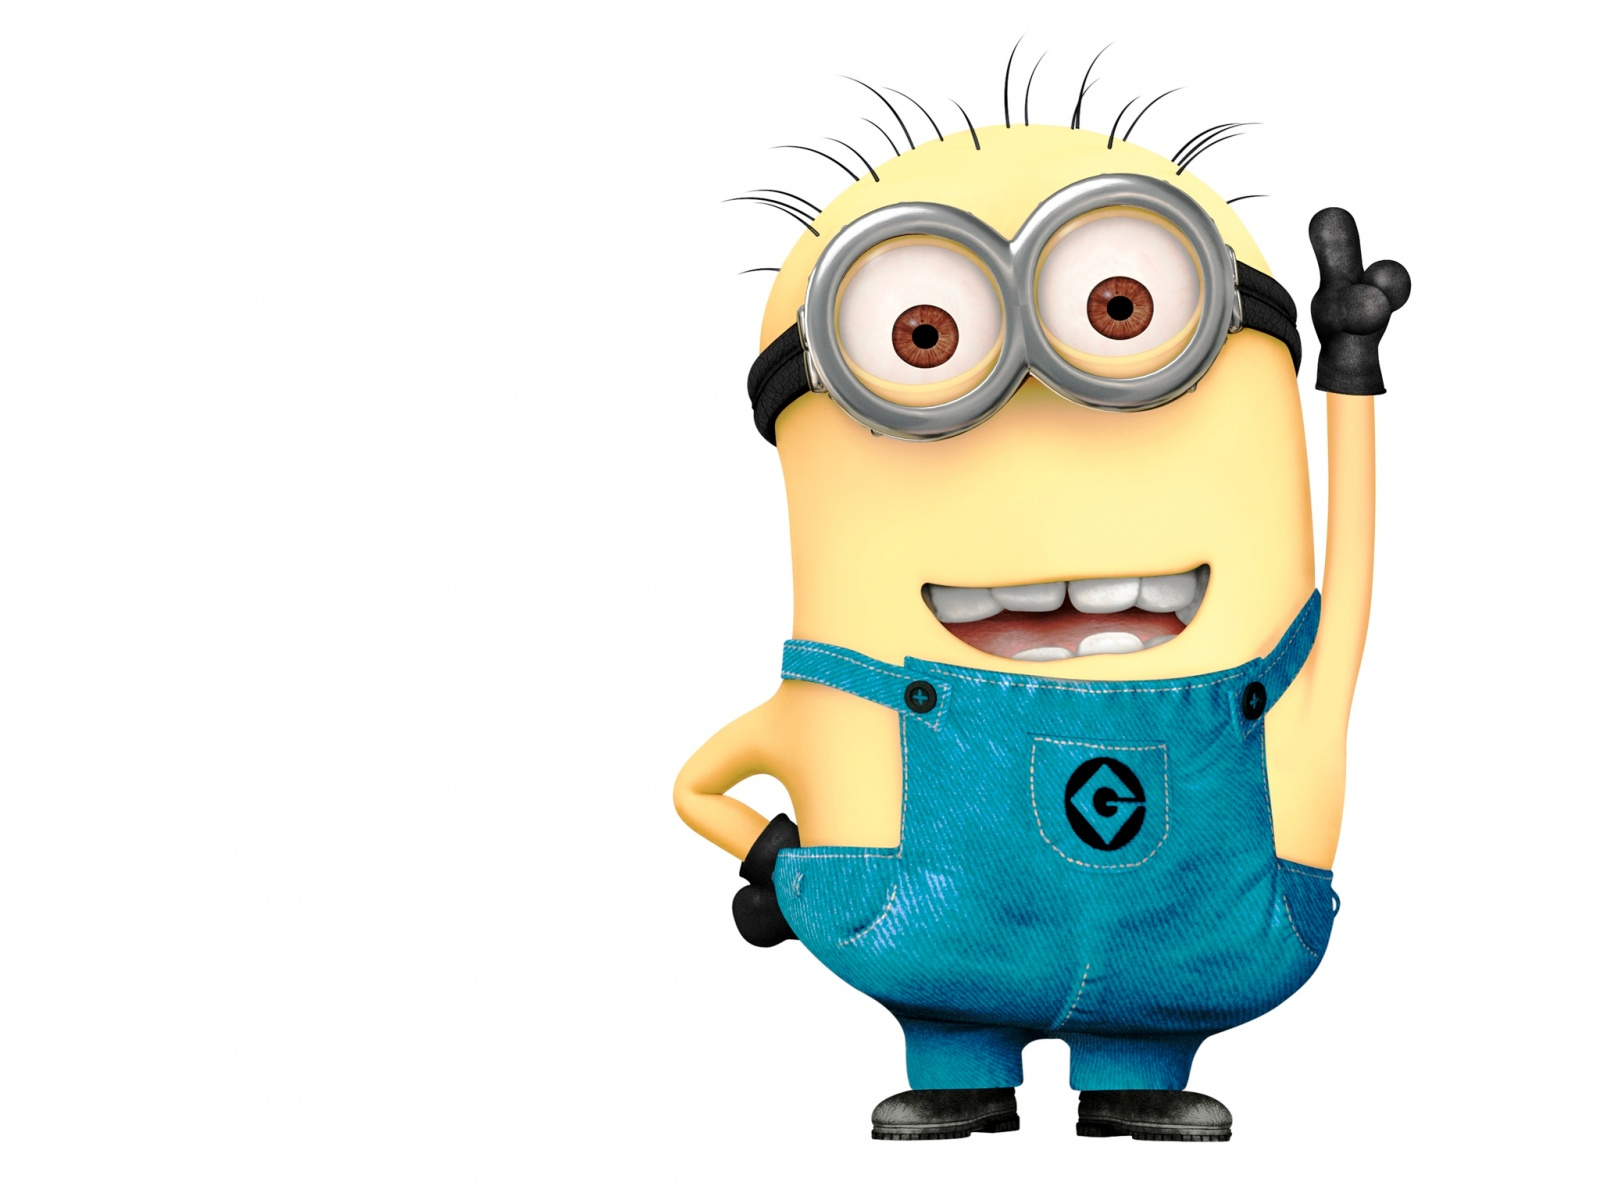 Purple Minion Despicable me 2 Wallpaper Despicable me 2 Minions